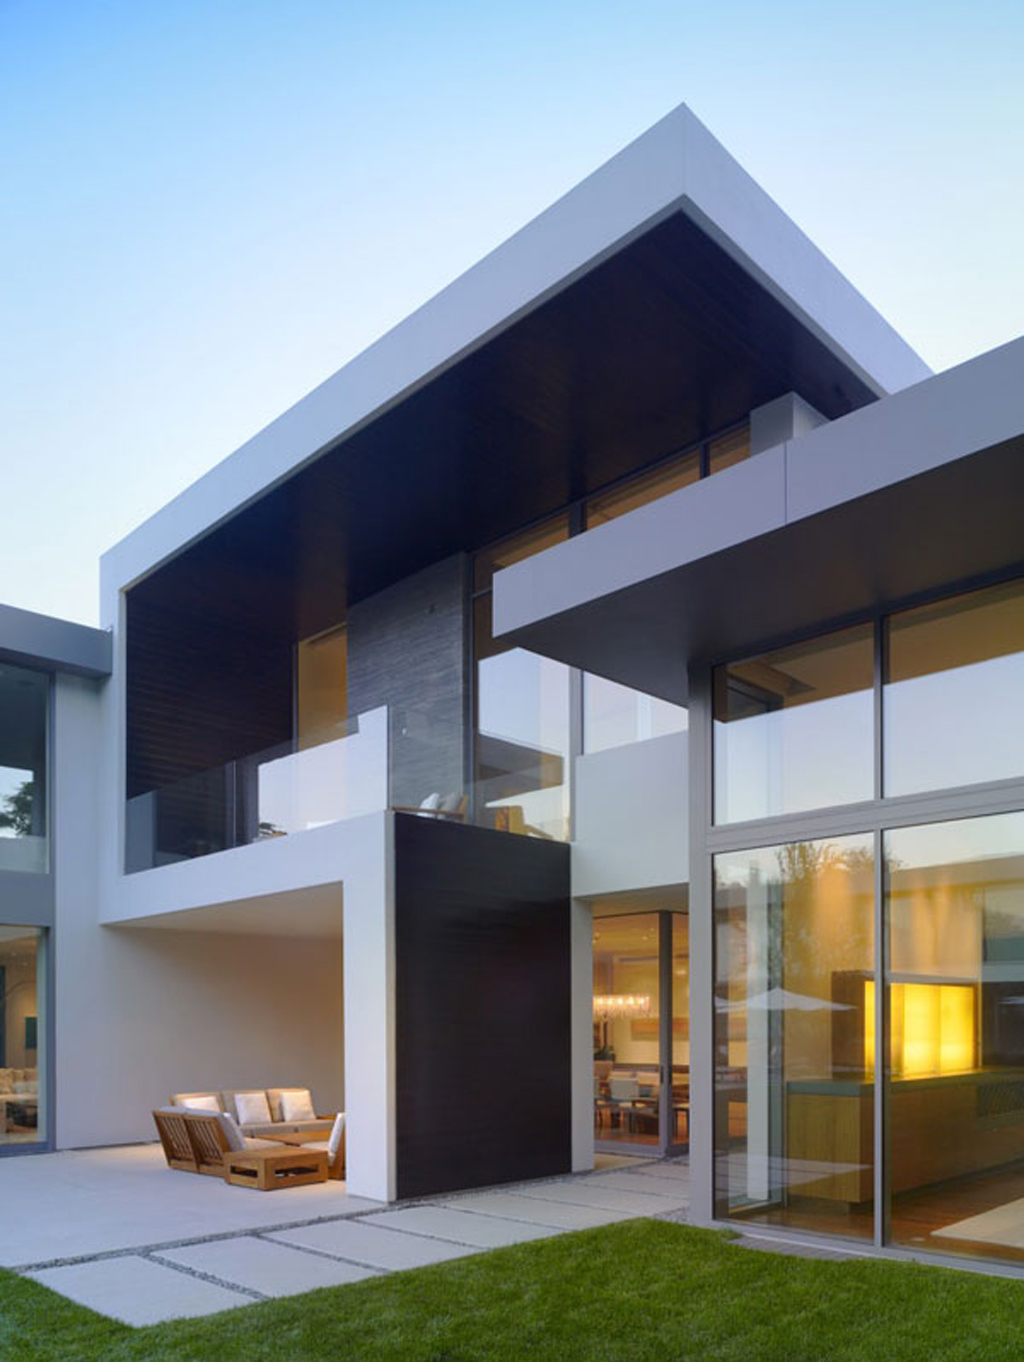 Architecture villa image architecture design for home for Modern house website